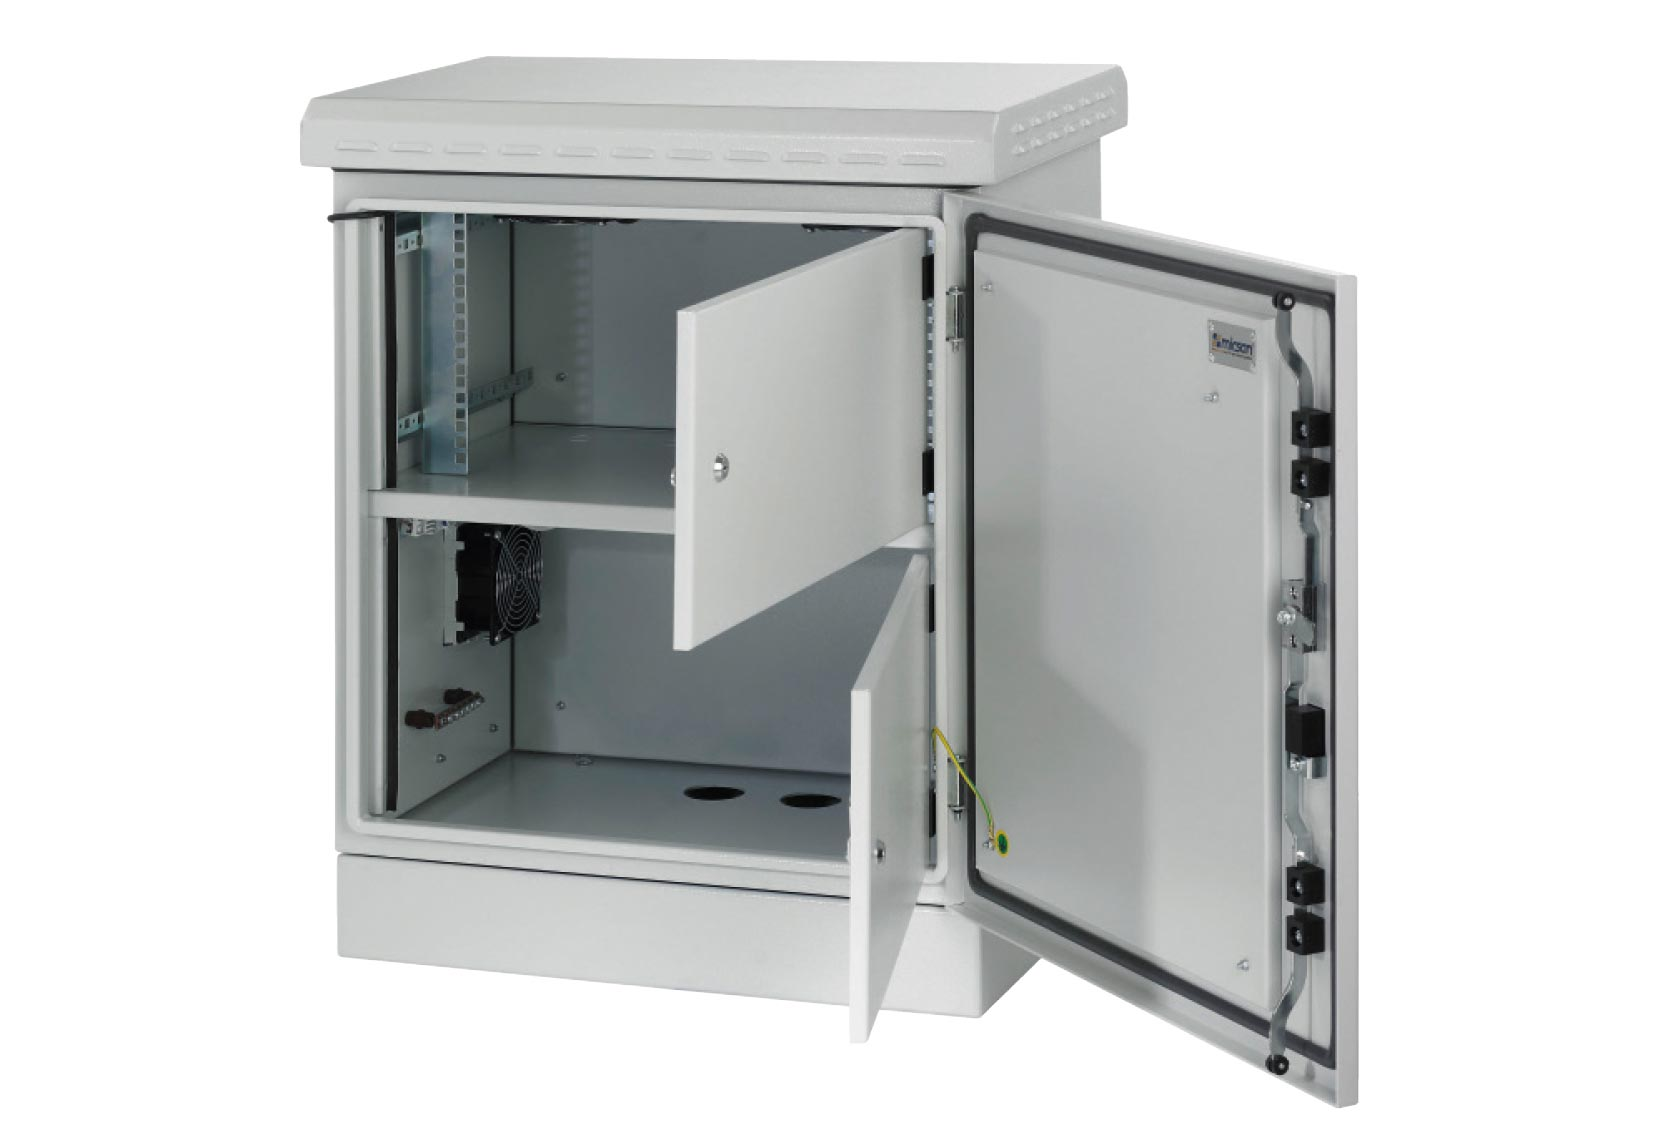 Cabinet Building With Access Hardware